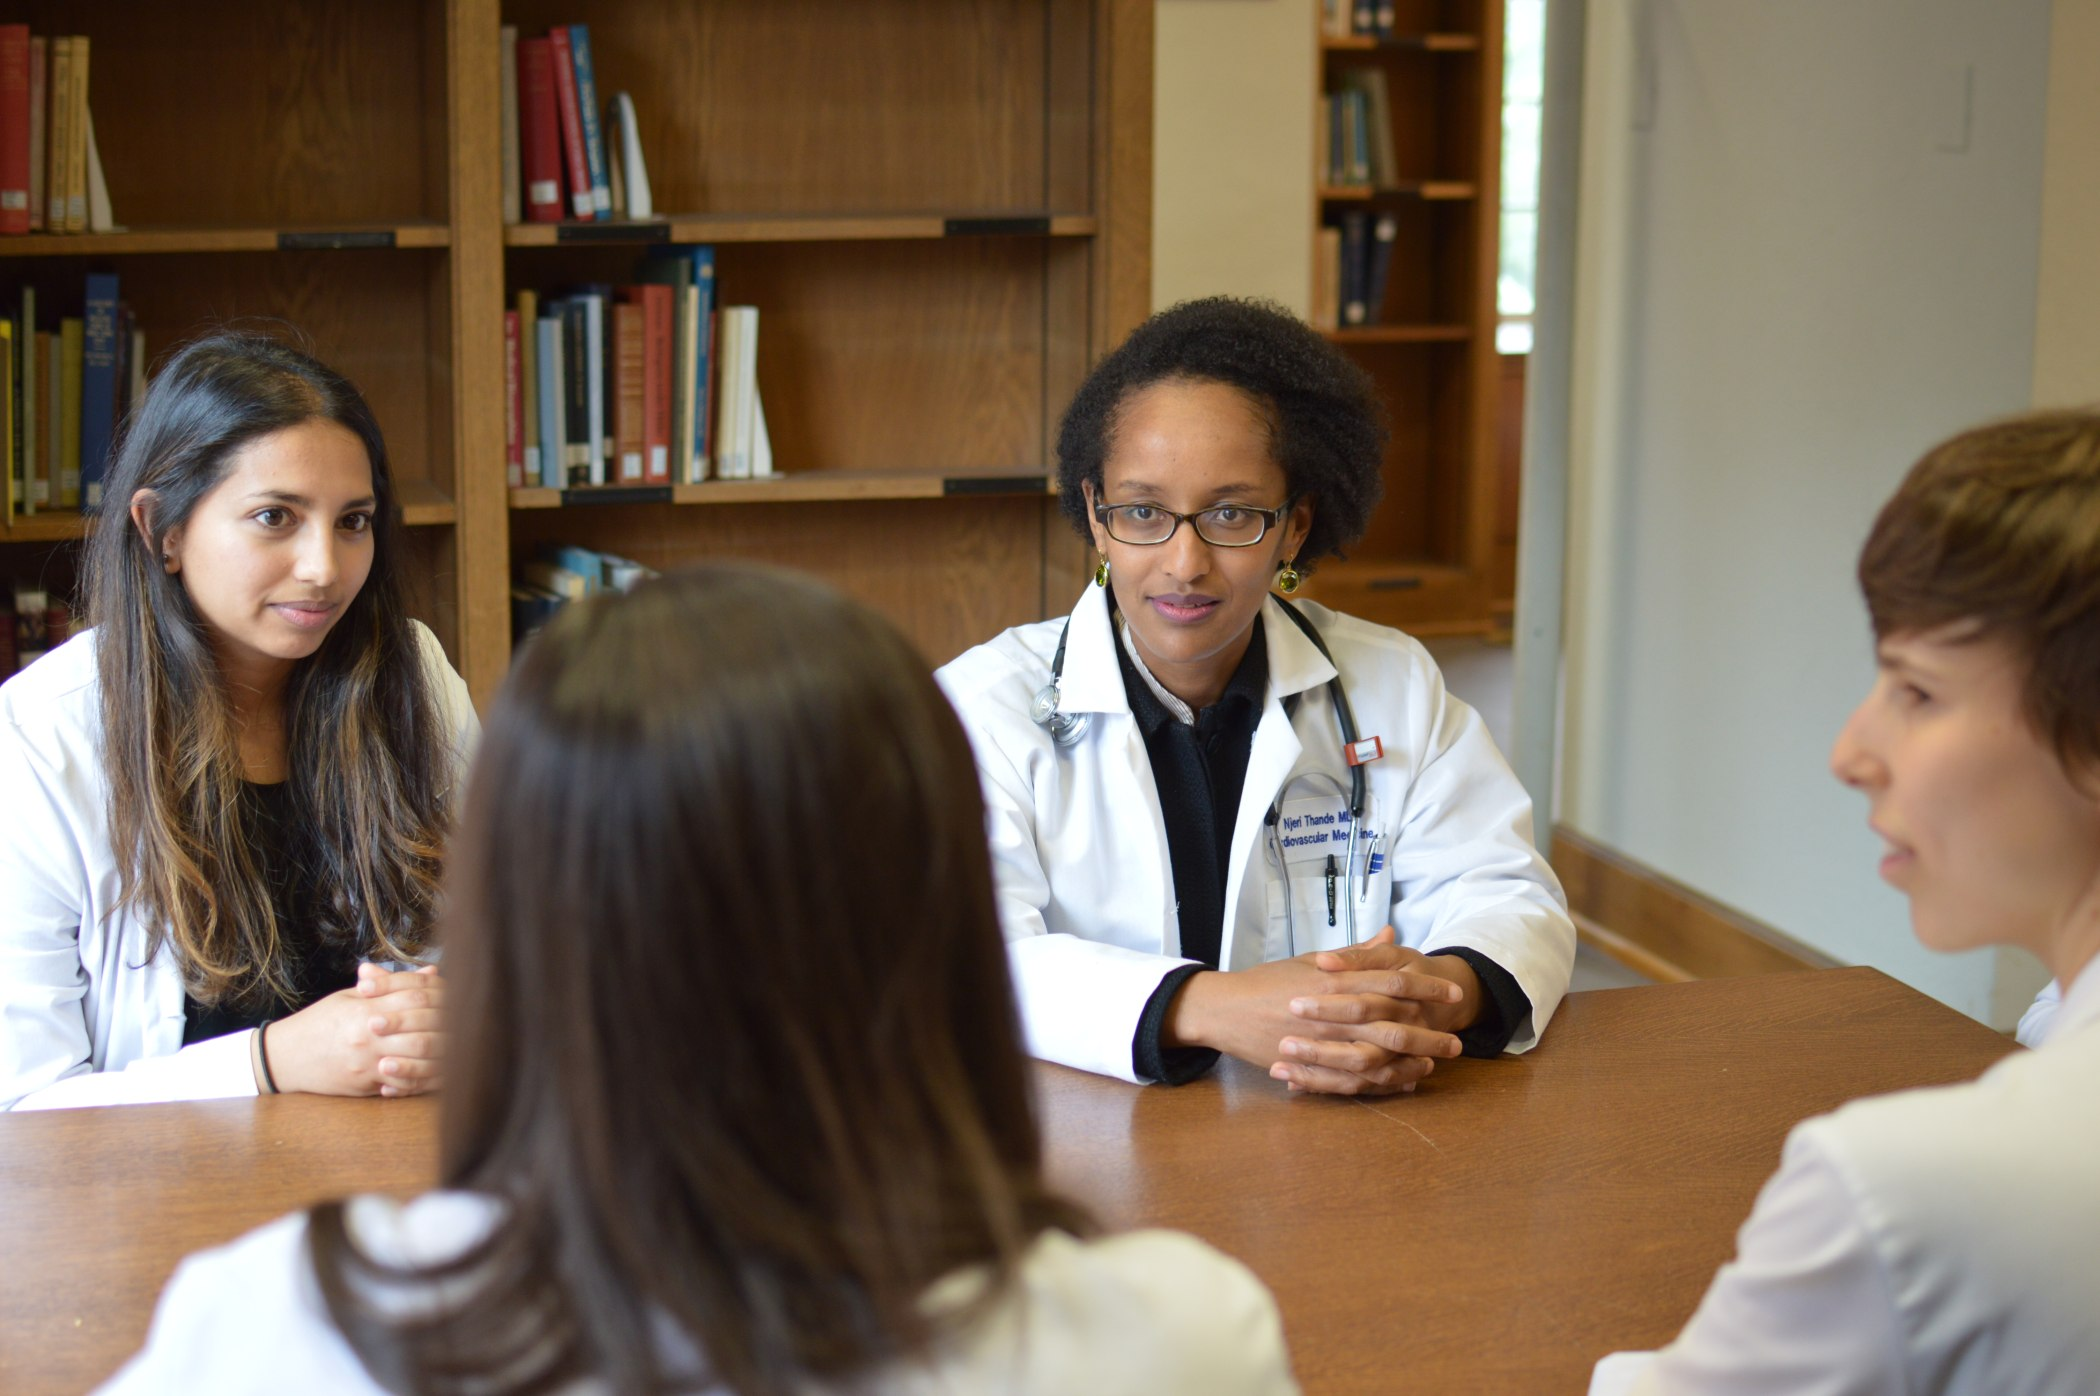 Dr. Njeri Thande (right) is working with WHRY and students such as Nisha Dalvie (left) to integrate a focus on sex and gender into the Yale School of Medicine curriculum.